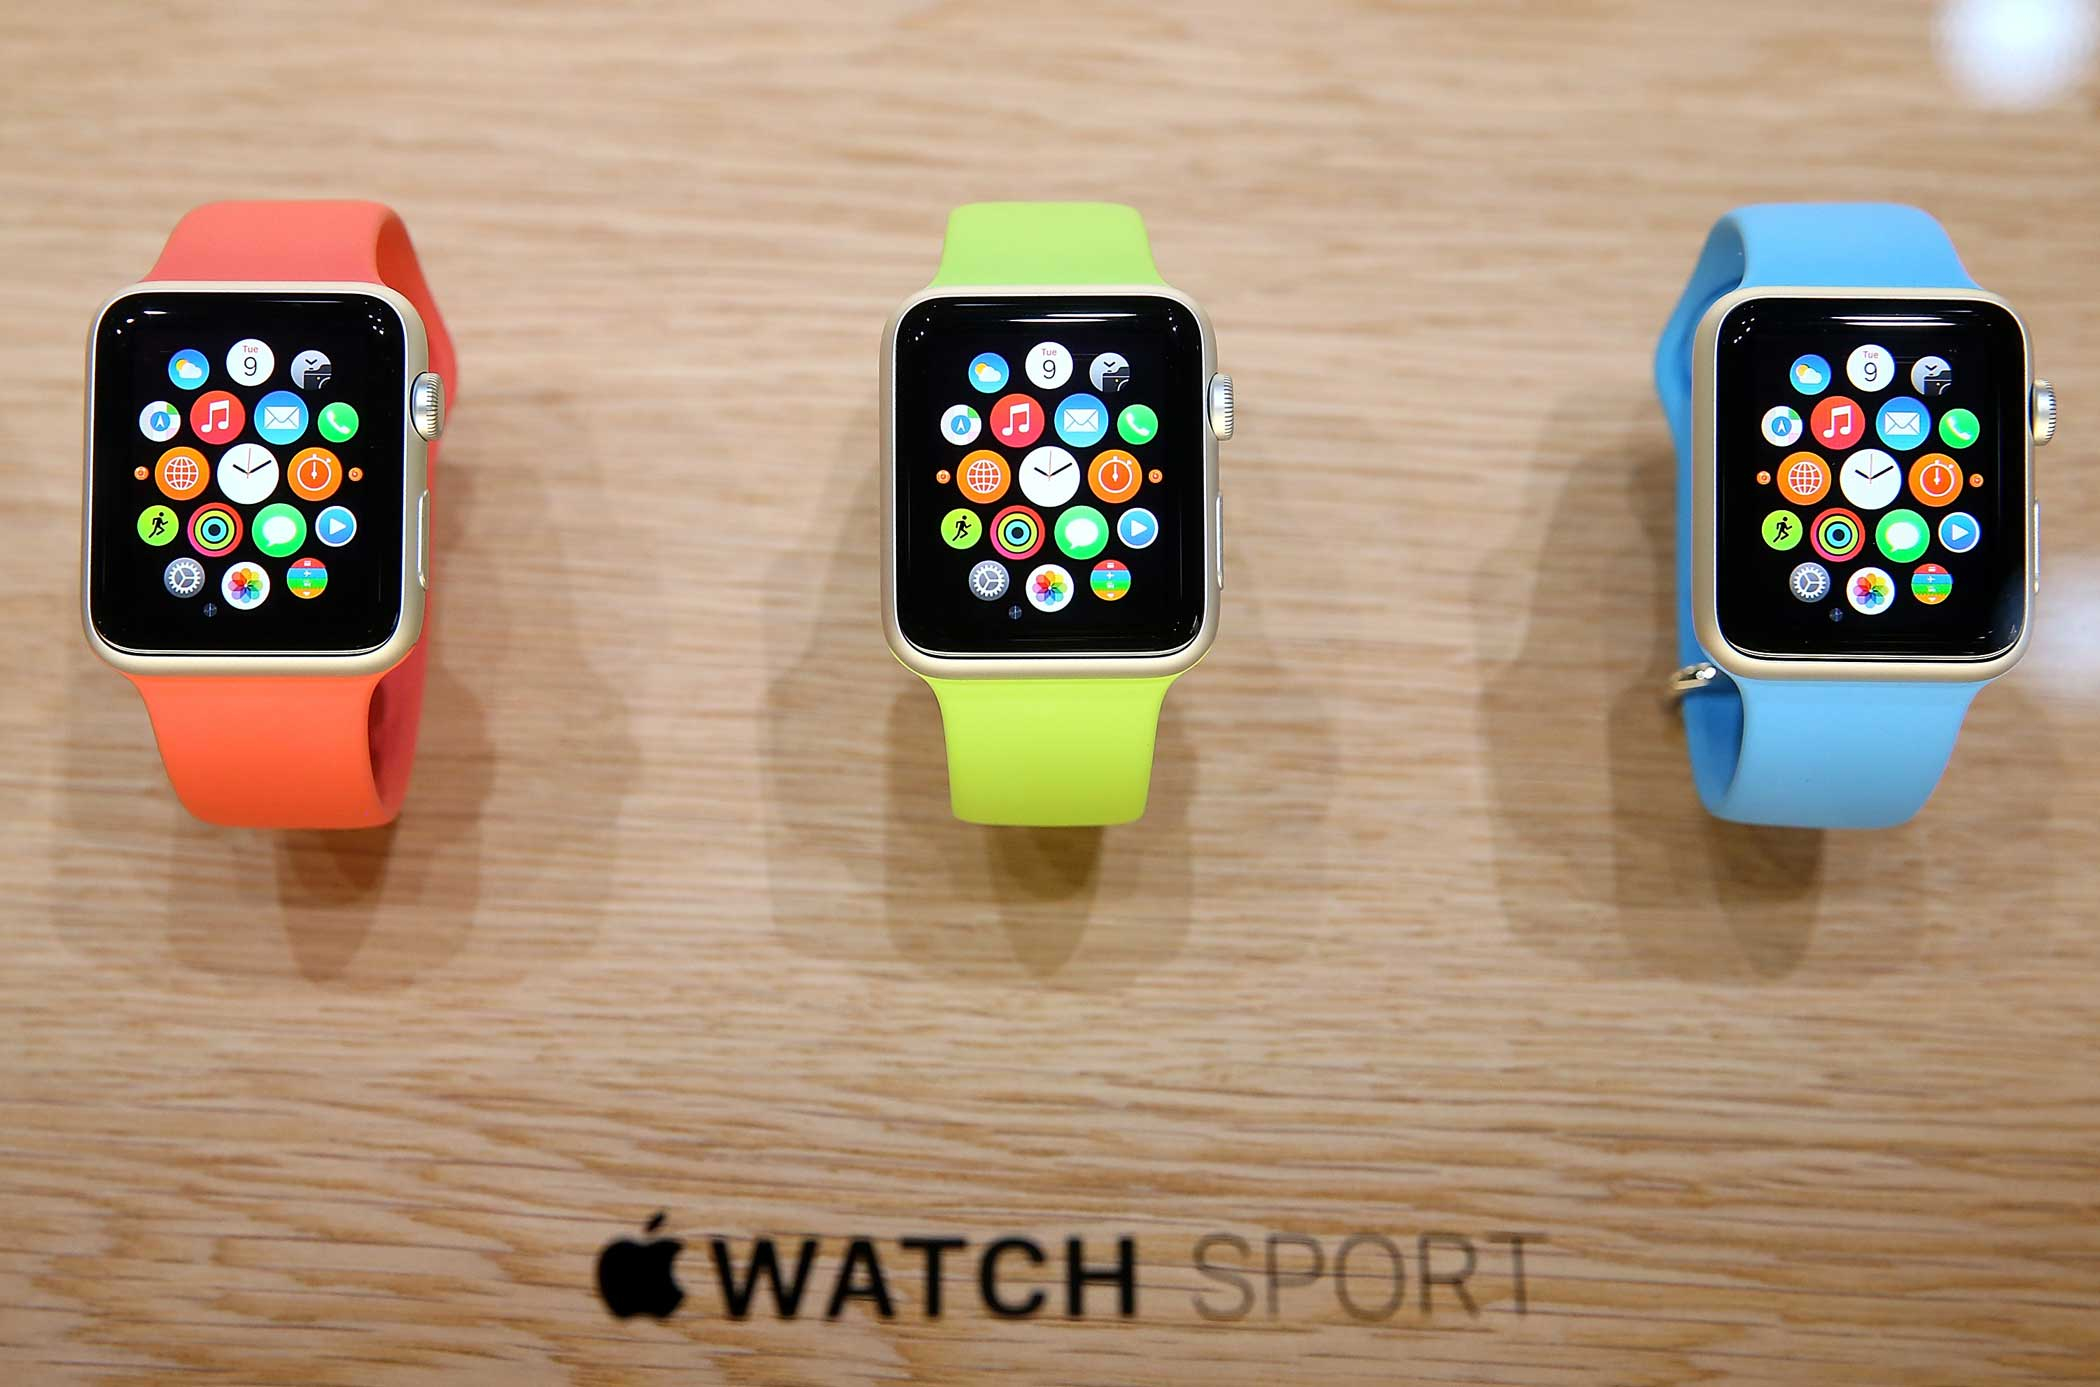 The Watch is the most customizable and varied product Apple has likely ever launched. It'll come in three editions made of different metals and be available with multiple snap-in wrist bands. Prices start at $349.